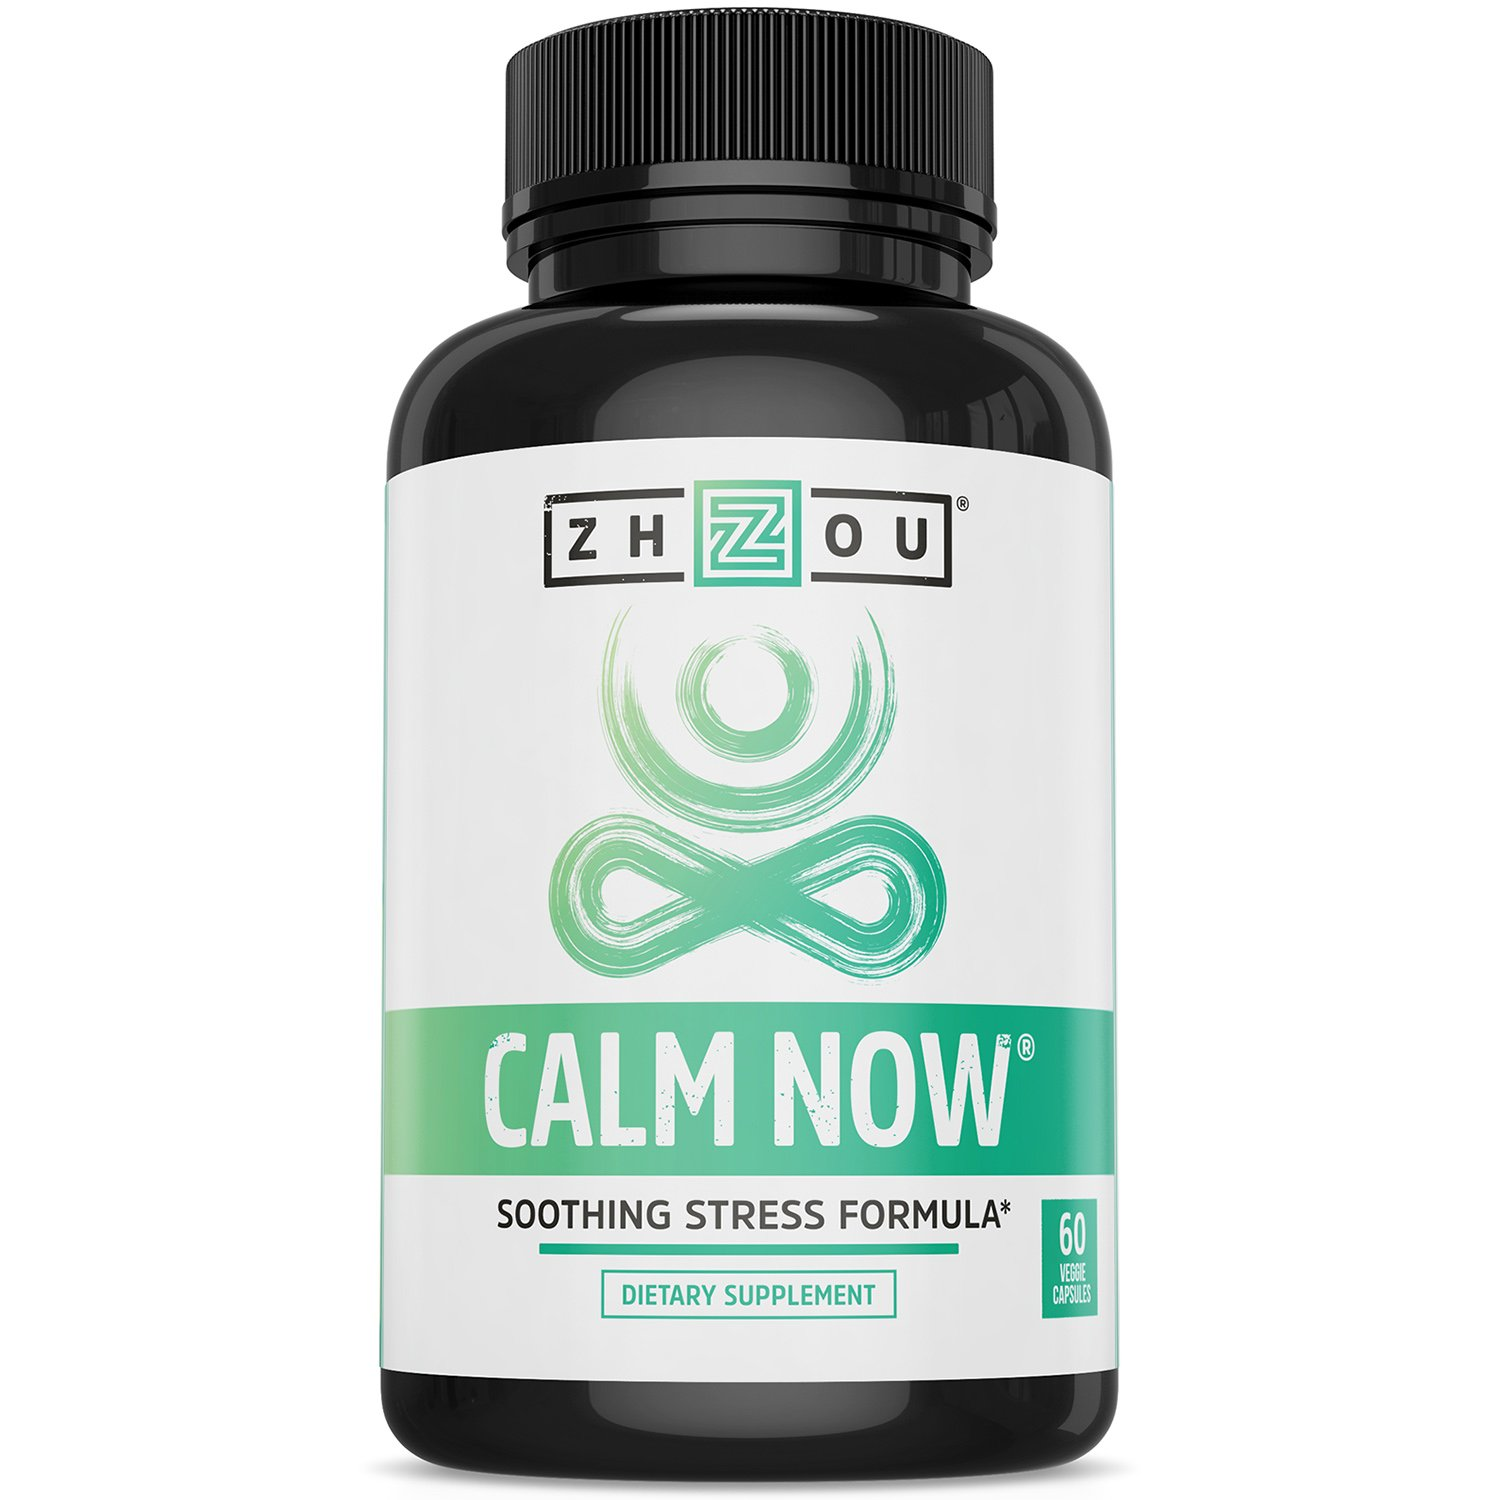 CALM NOW Soothing Stress Support Supplement, Herbal Blend Crafted To Keep Busy Minds Relaxed